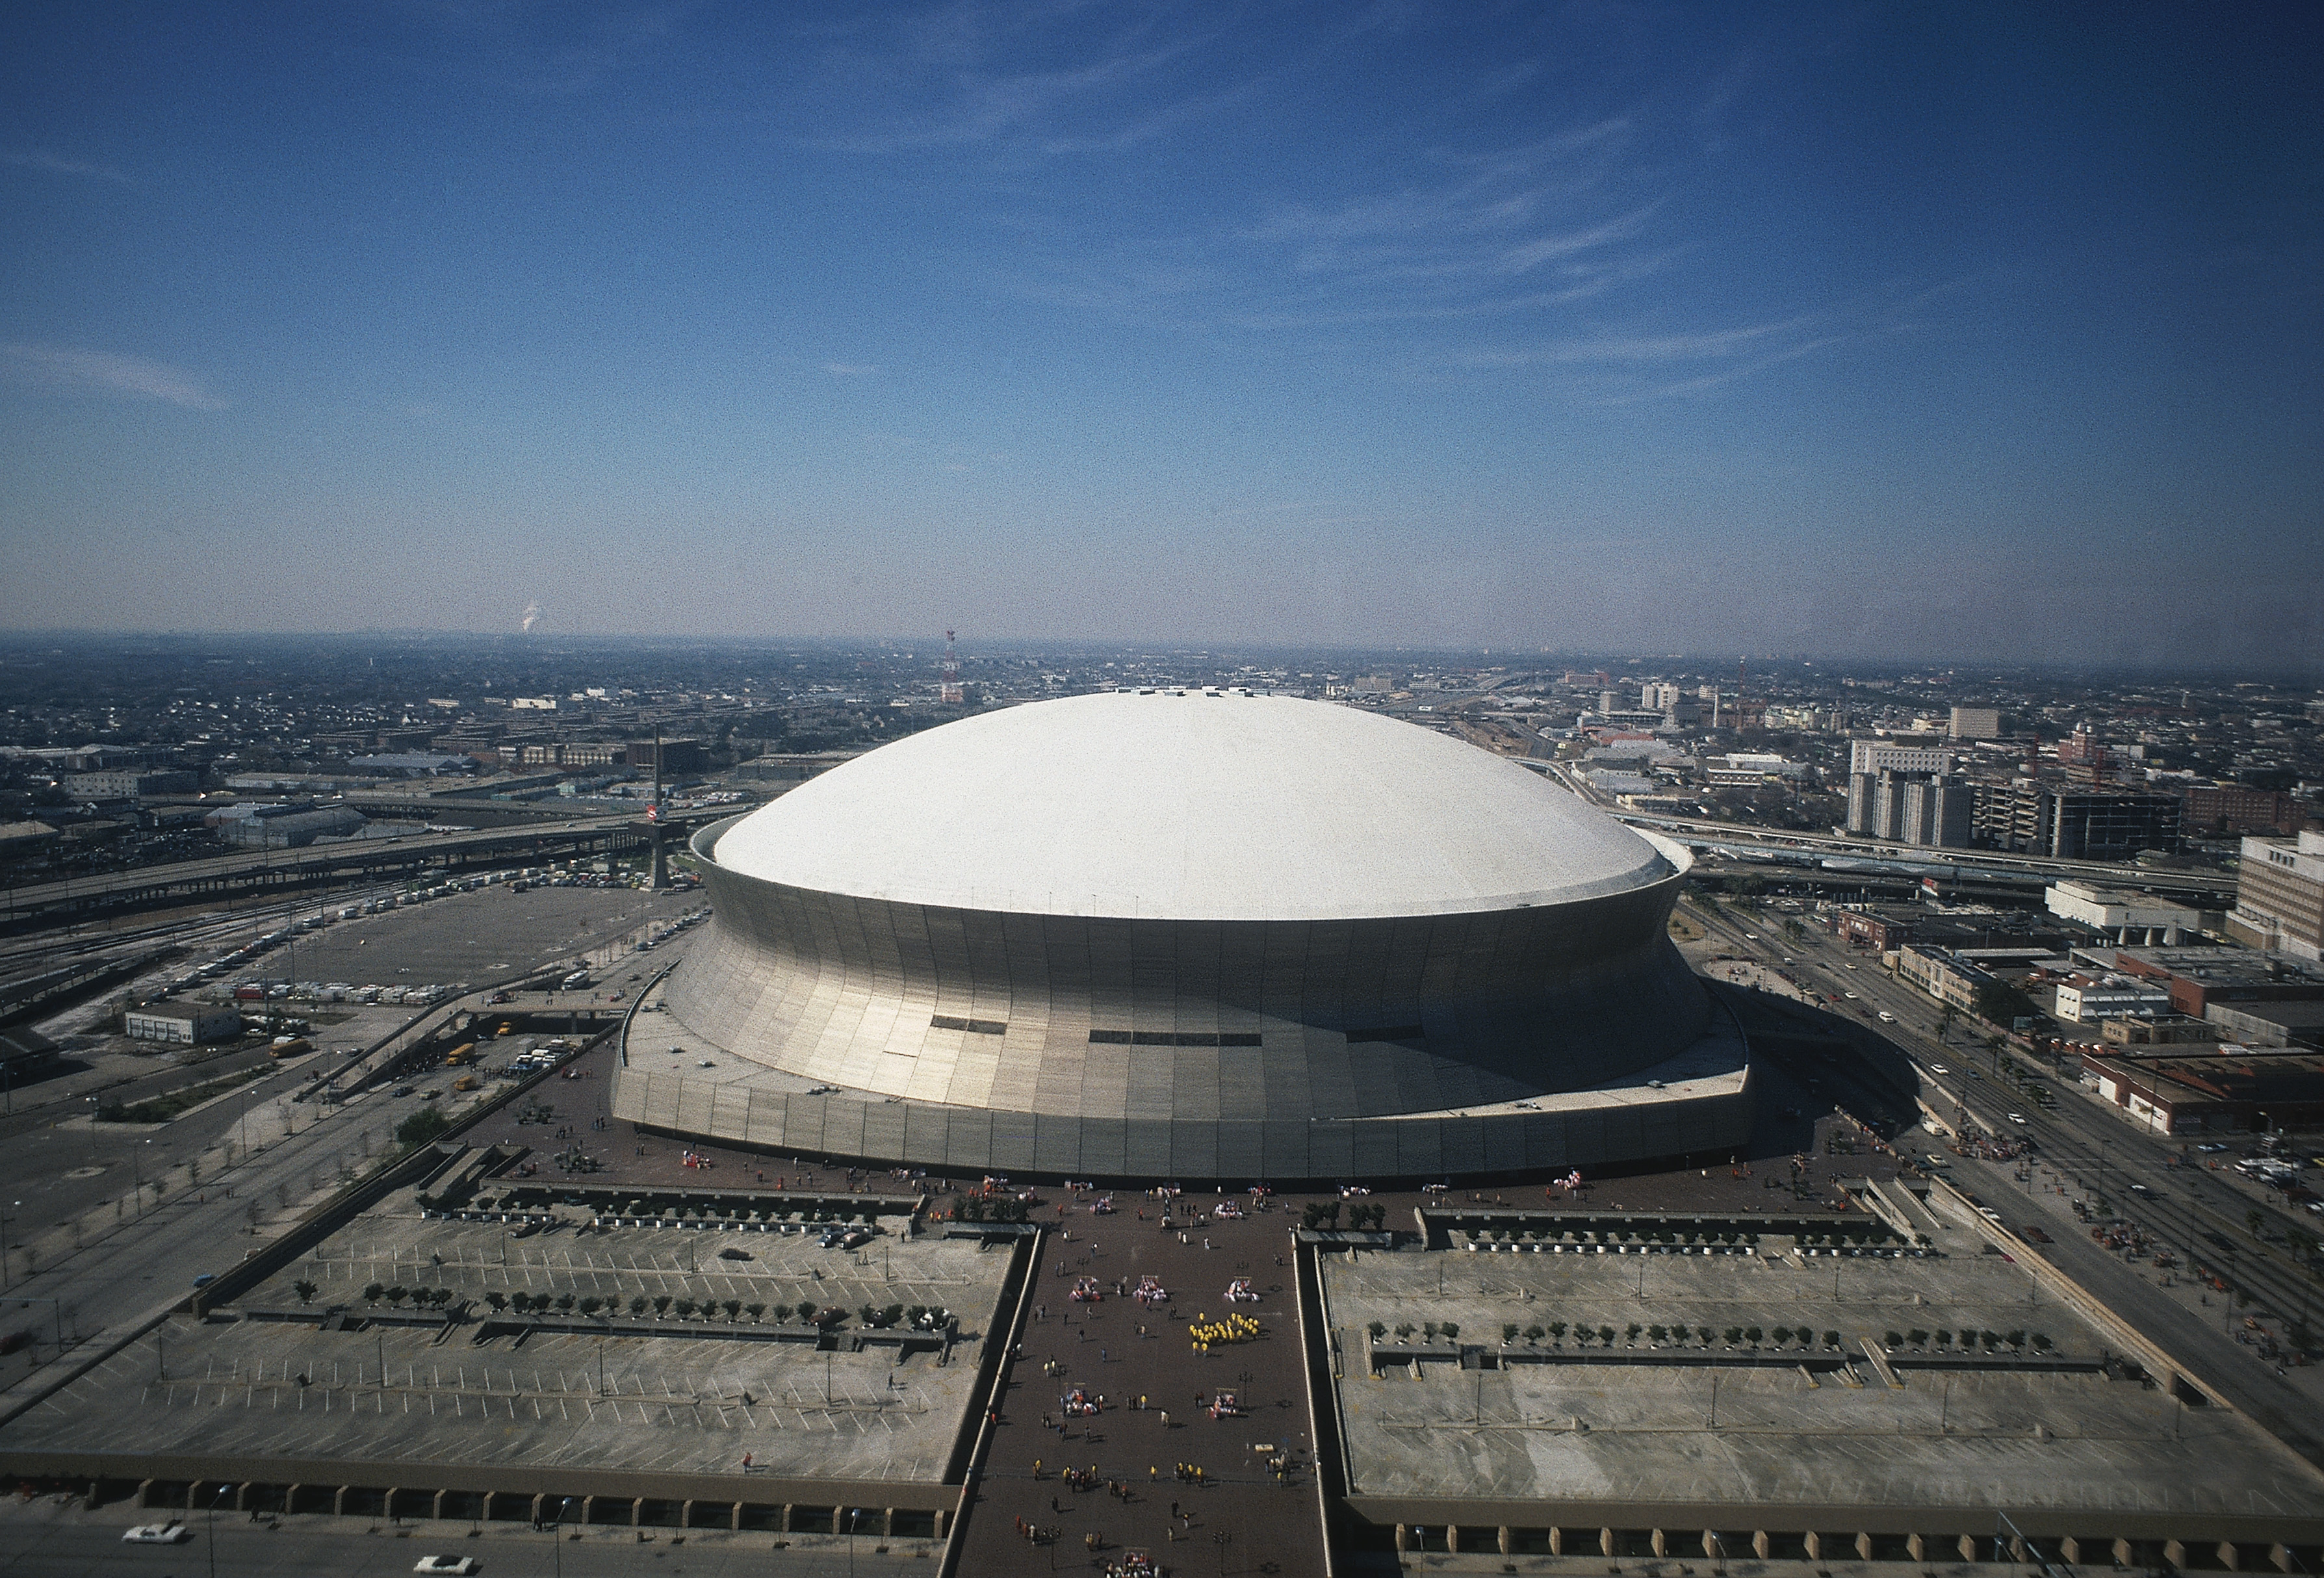 """The Mercedes-Benz Superdome, which opened to the public in New Orleans in 1975 as the Louisiana Superdome, has been the site of a Muhammad Ali boxing match, Rolling Stones concert and a papal address, in addition to multiple Super Bowls. The stadium, also a """"refuge of last resort"""" for 30,000 Hurricane Katrina evacuees, has been home to the New Orleans Saints, Tulane Green Wave, New Orleans Jazz, and the New Orleans Breakers."""